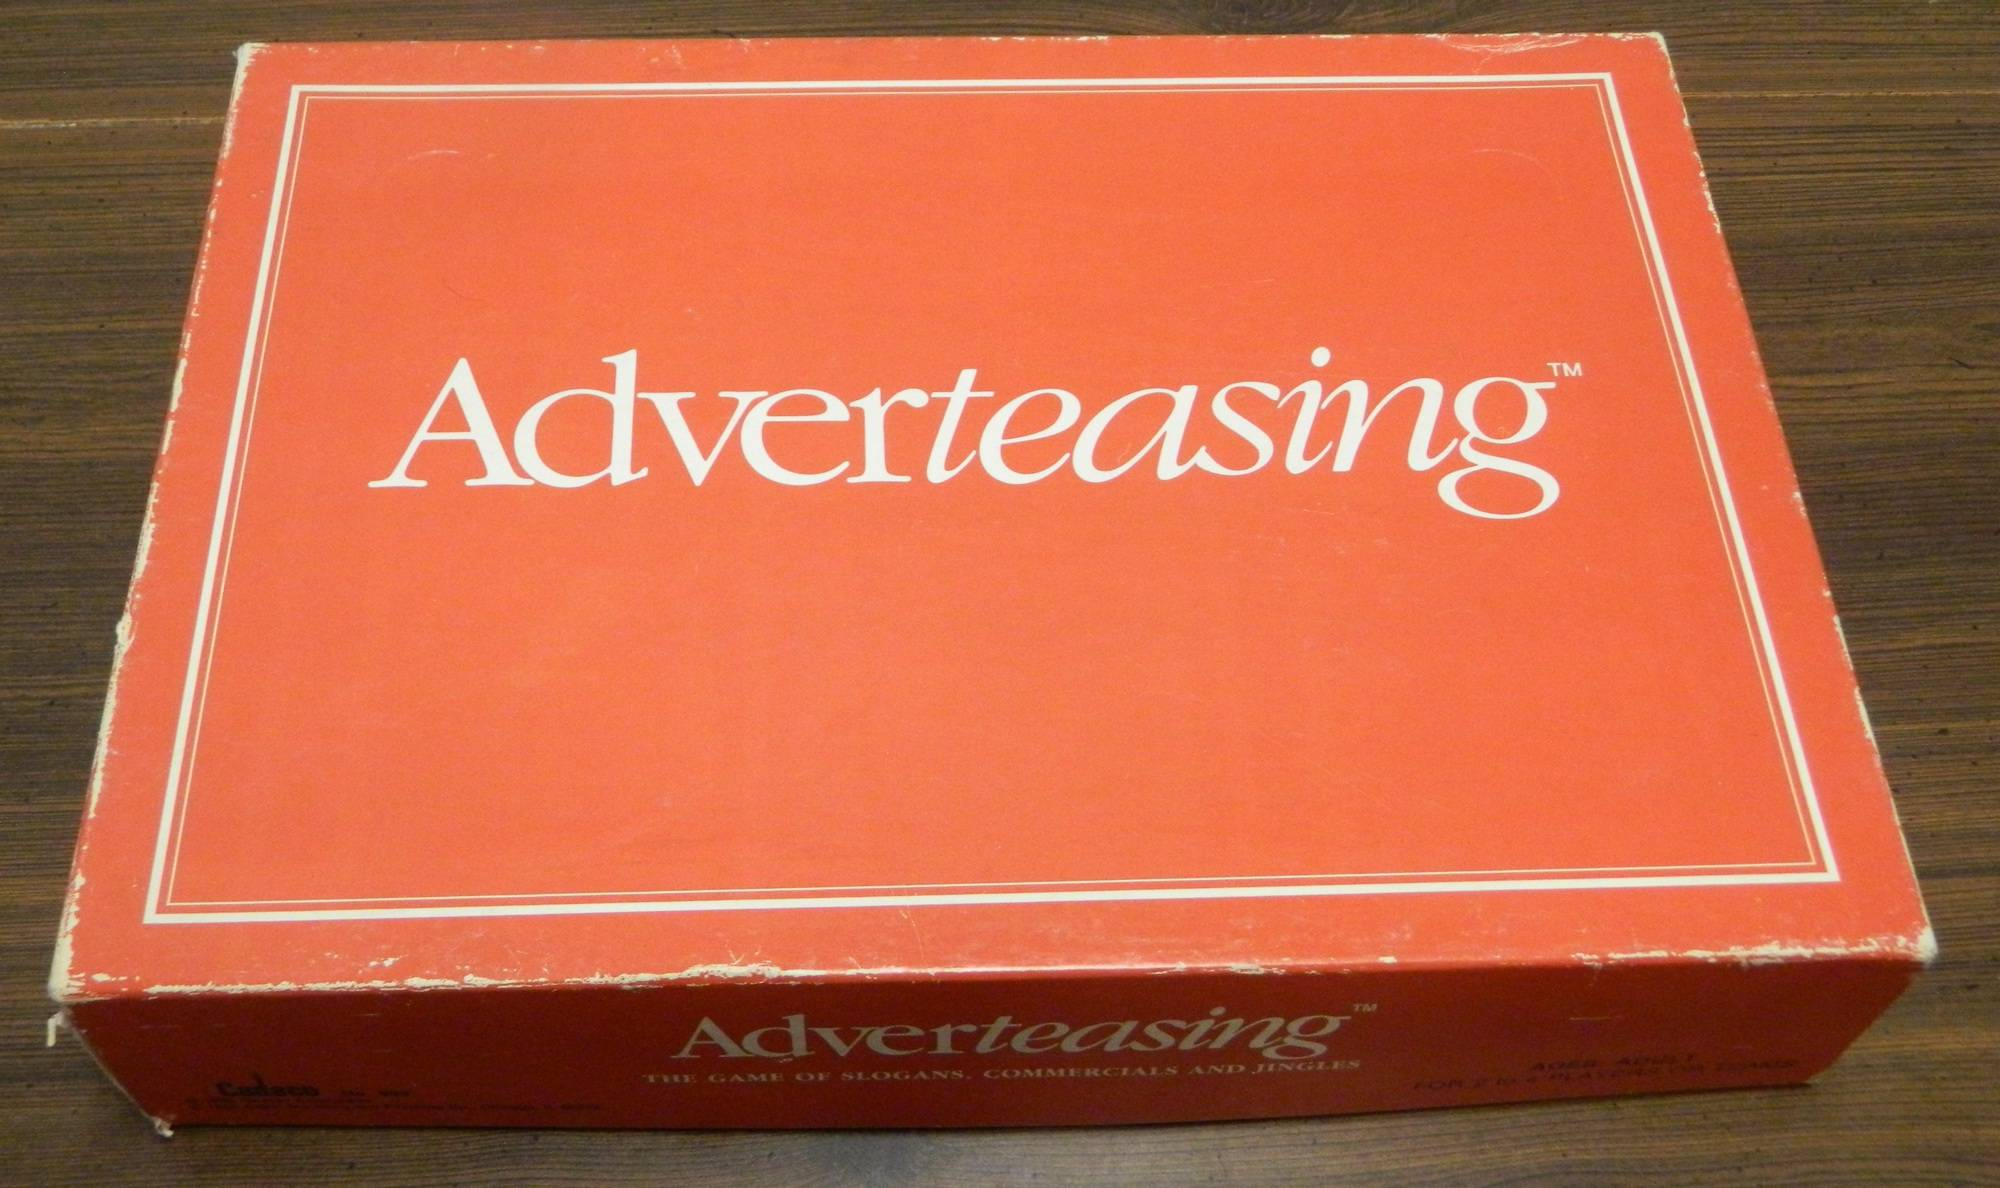 Box for Adverteasing